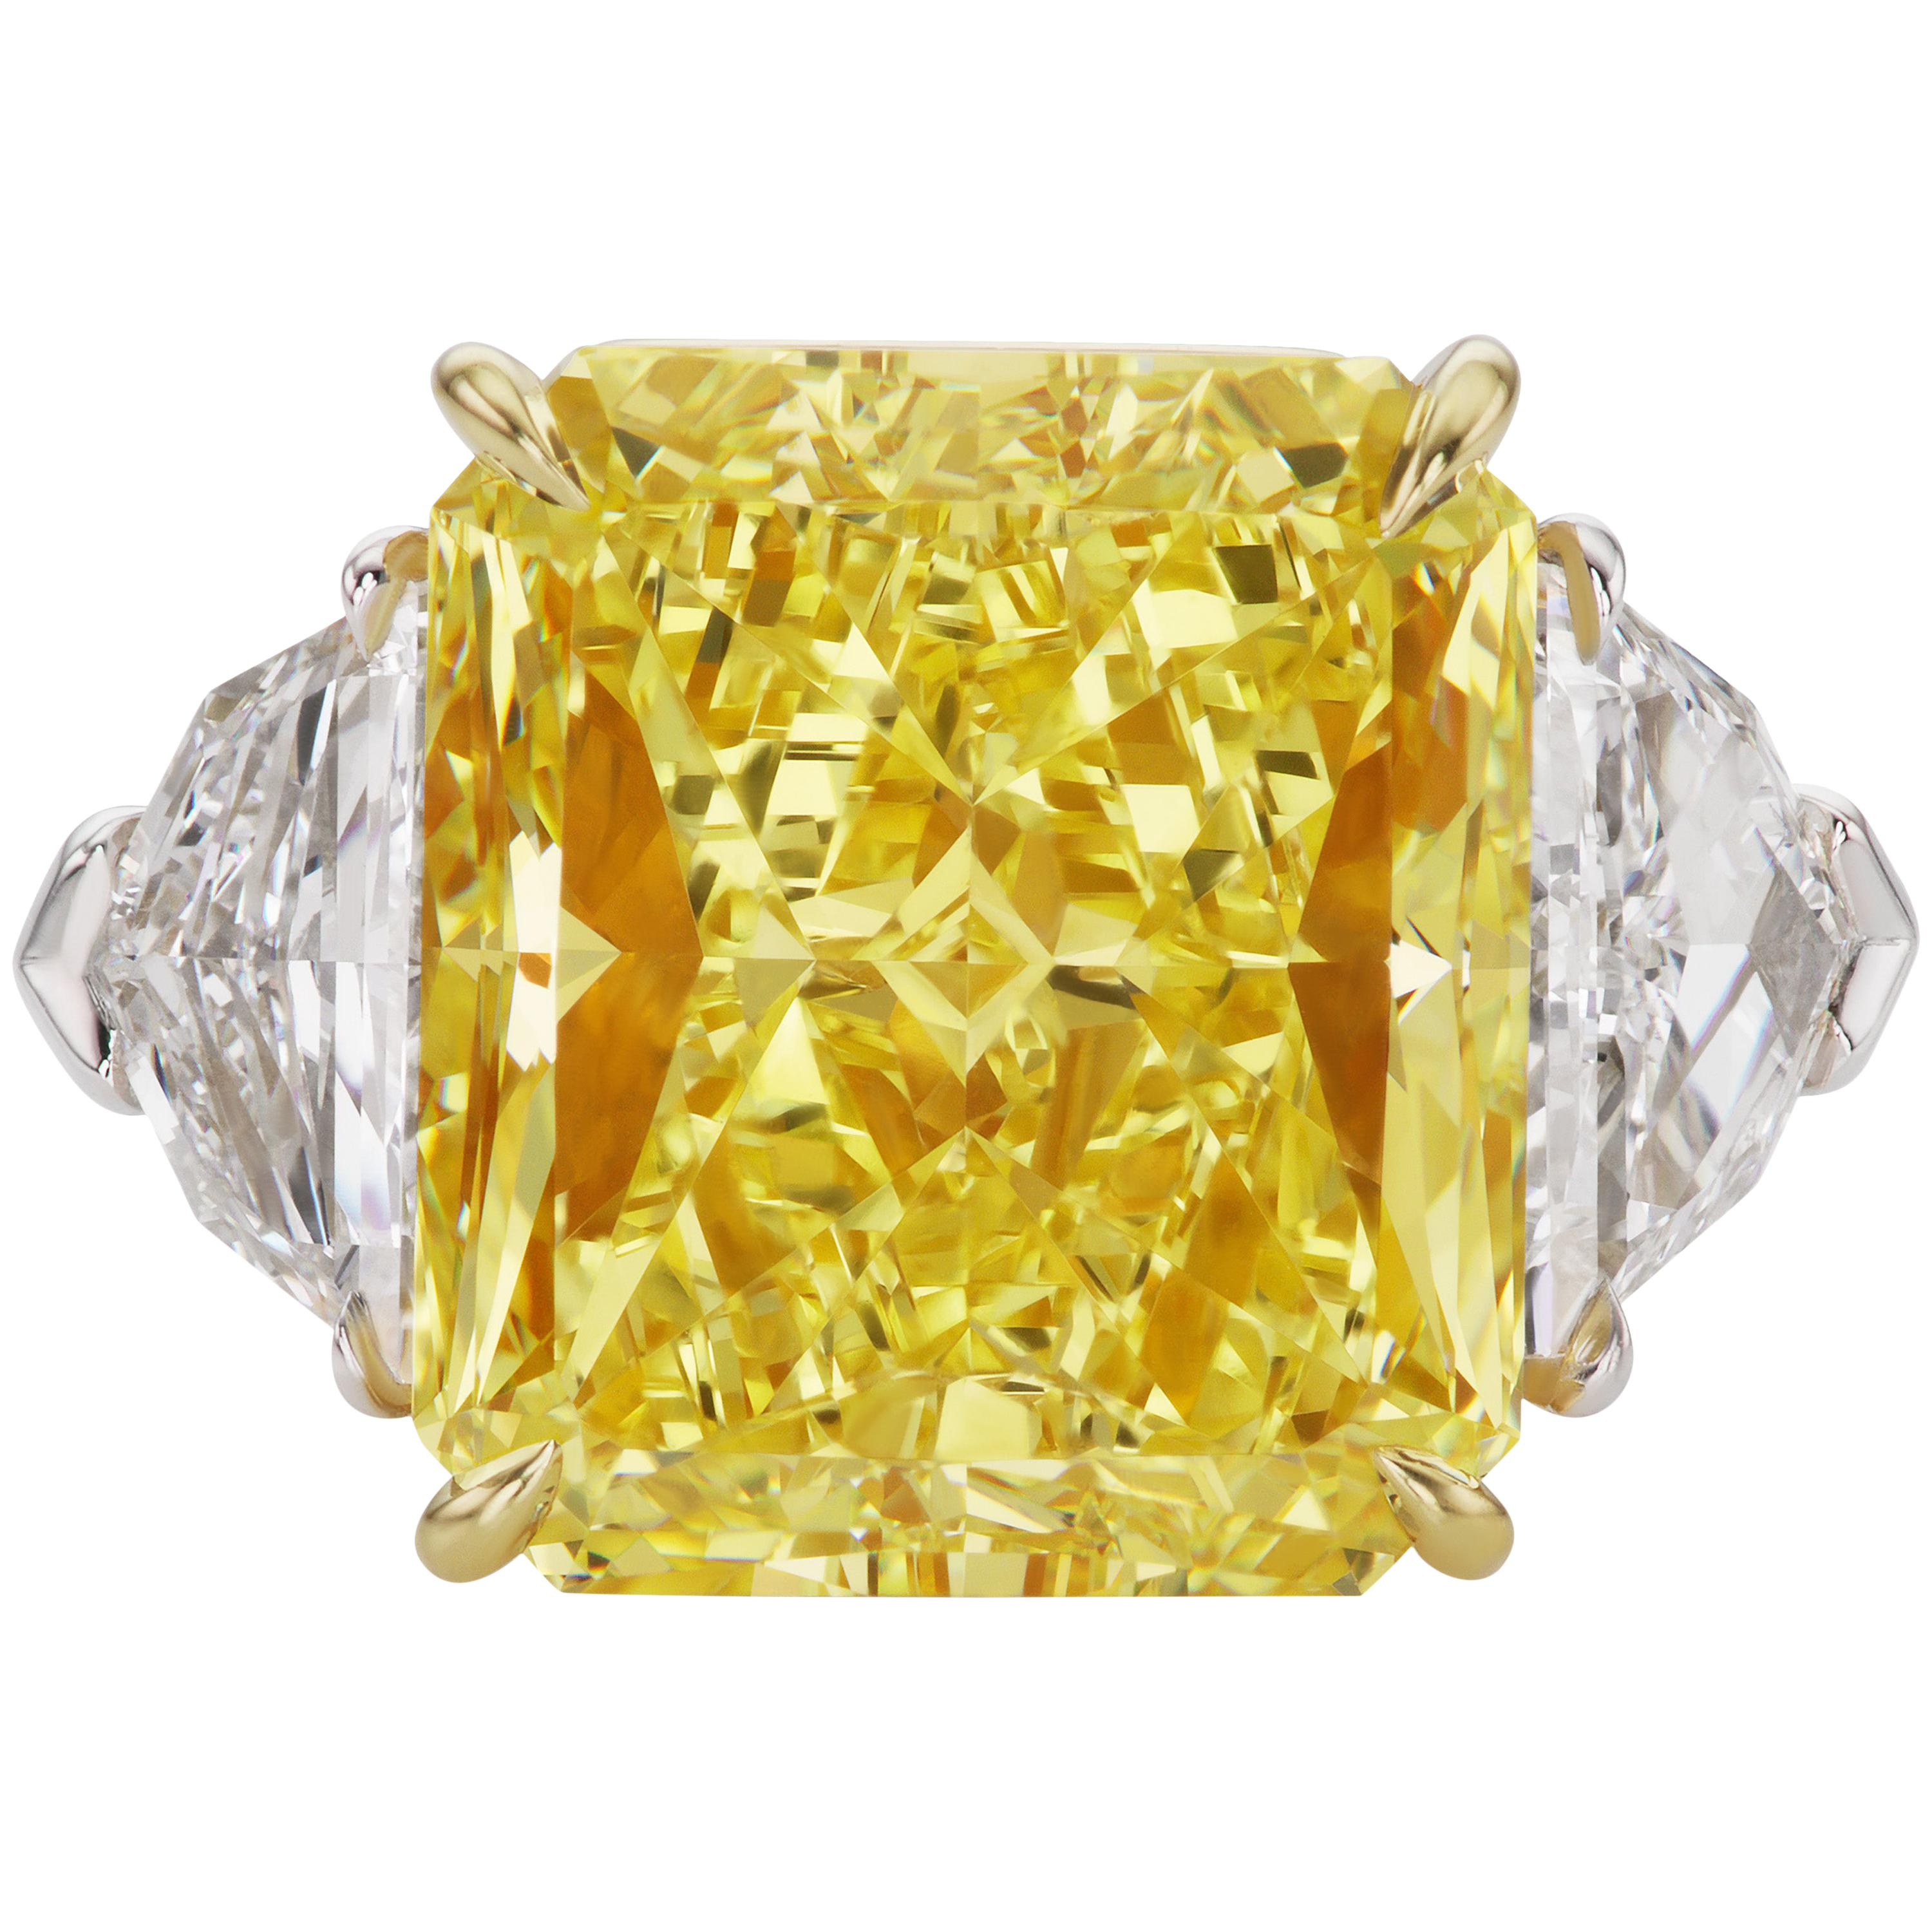 Scarselli 10 Carat Fancy Vivid Yellow GIA Diamond in a Platinum Engagement Ring